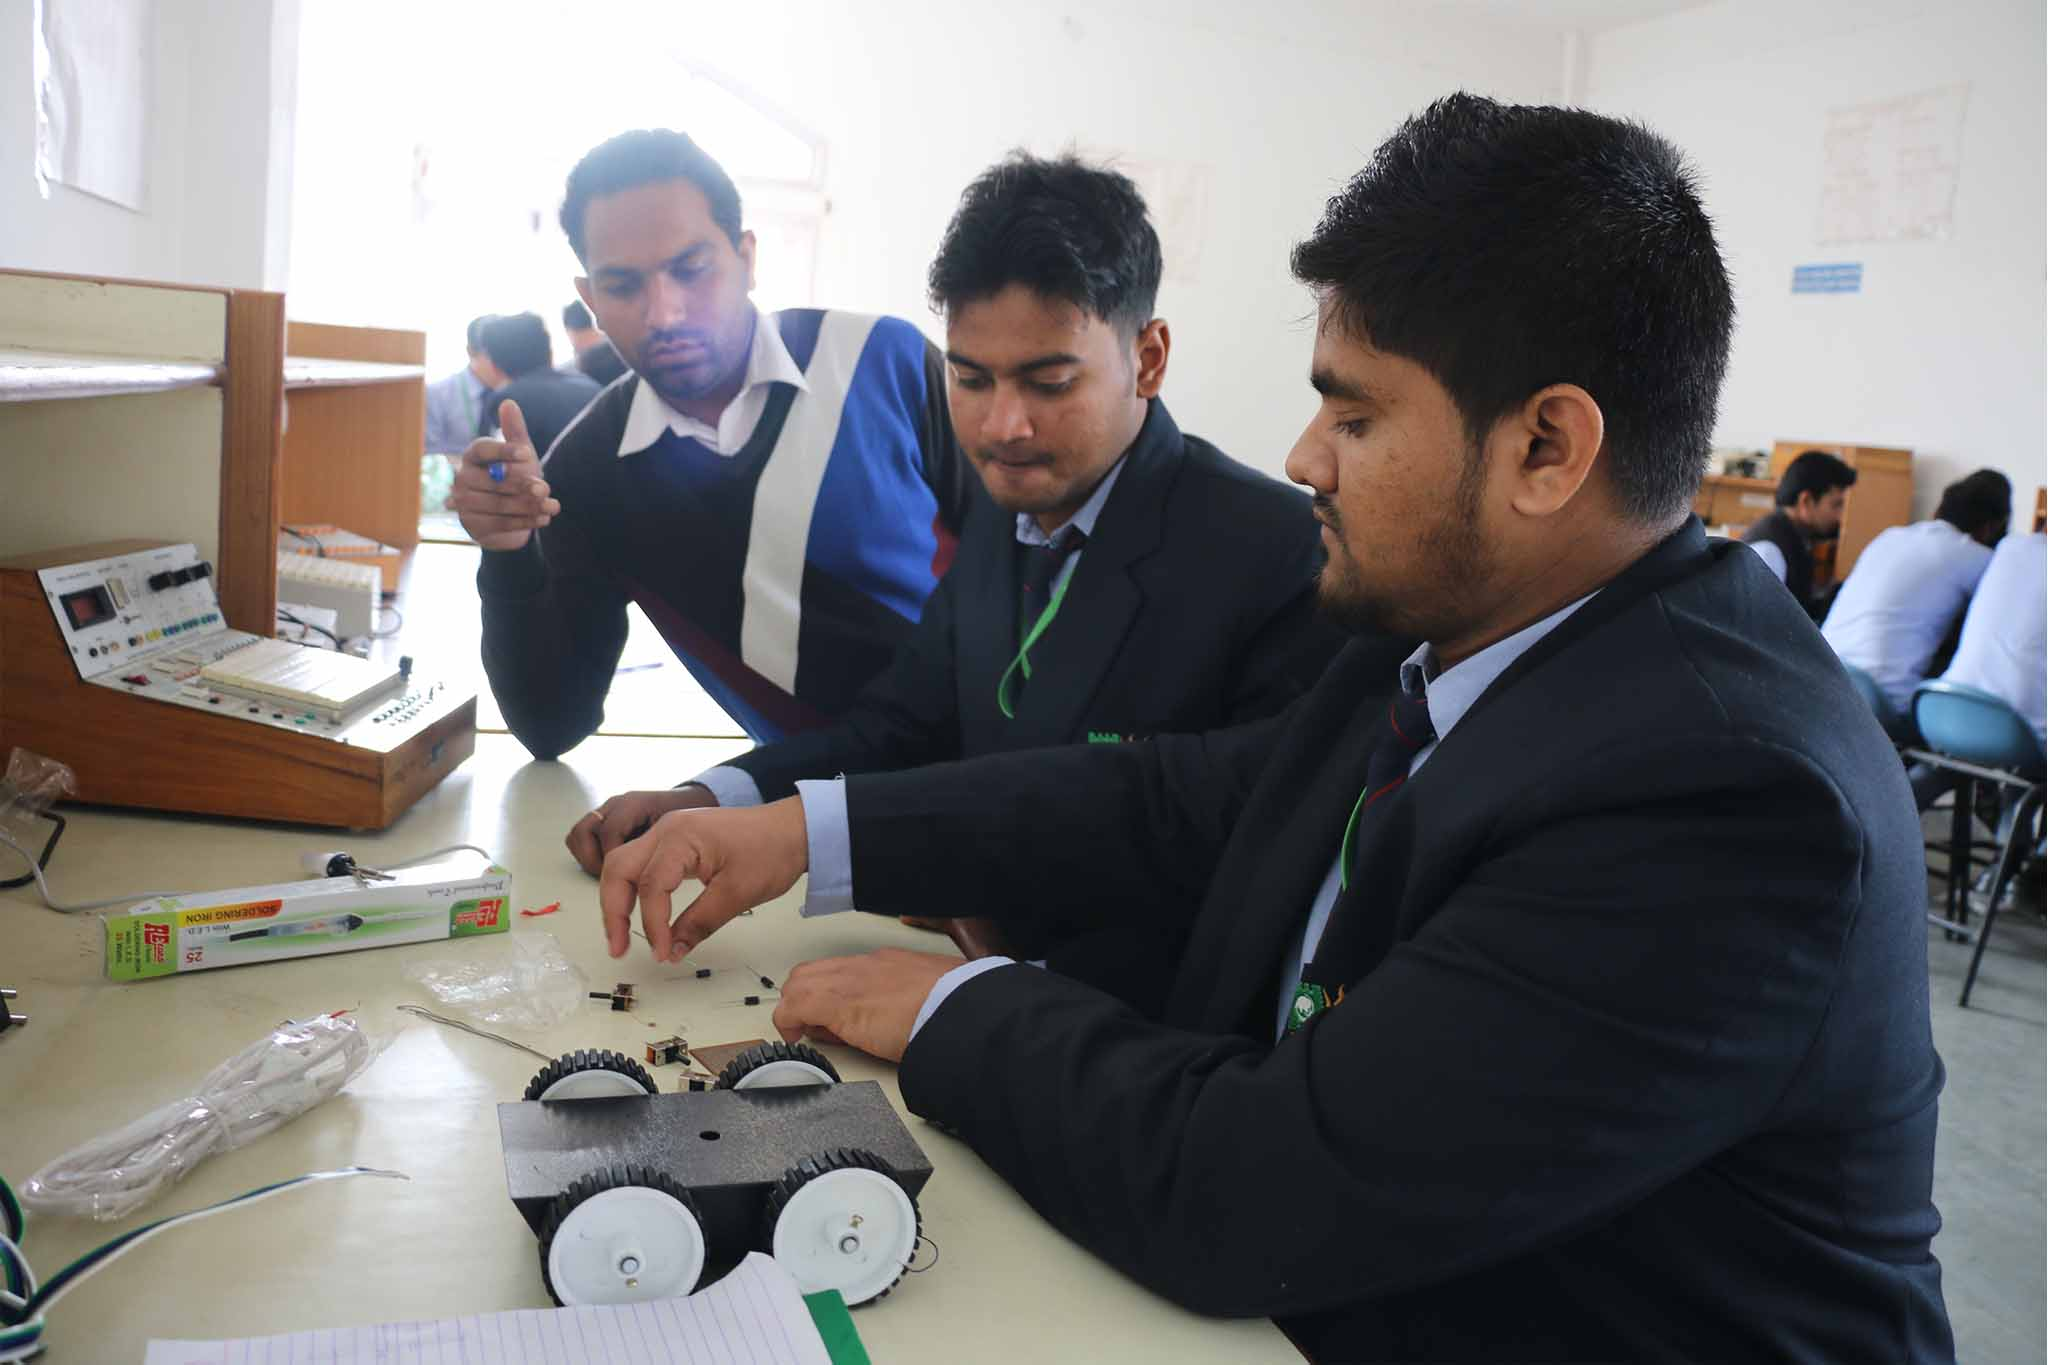 engineering students participated in various events at TI